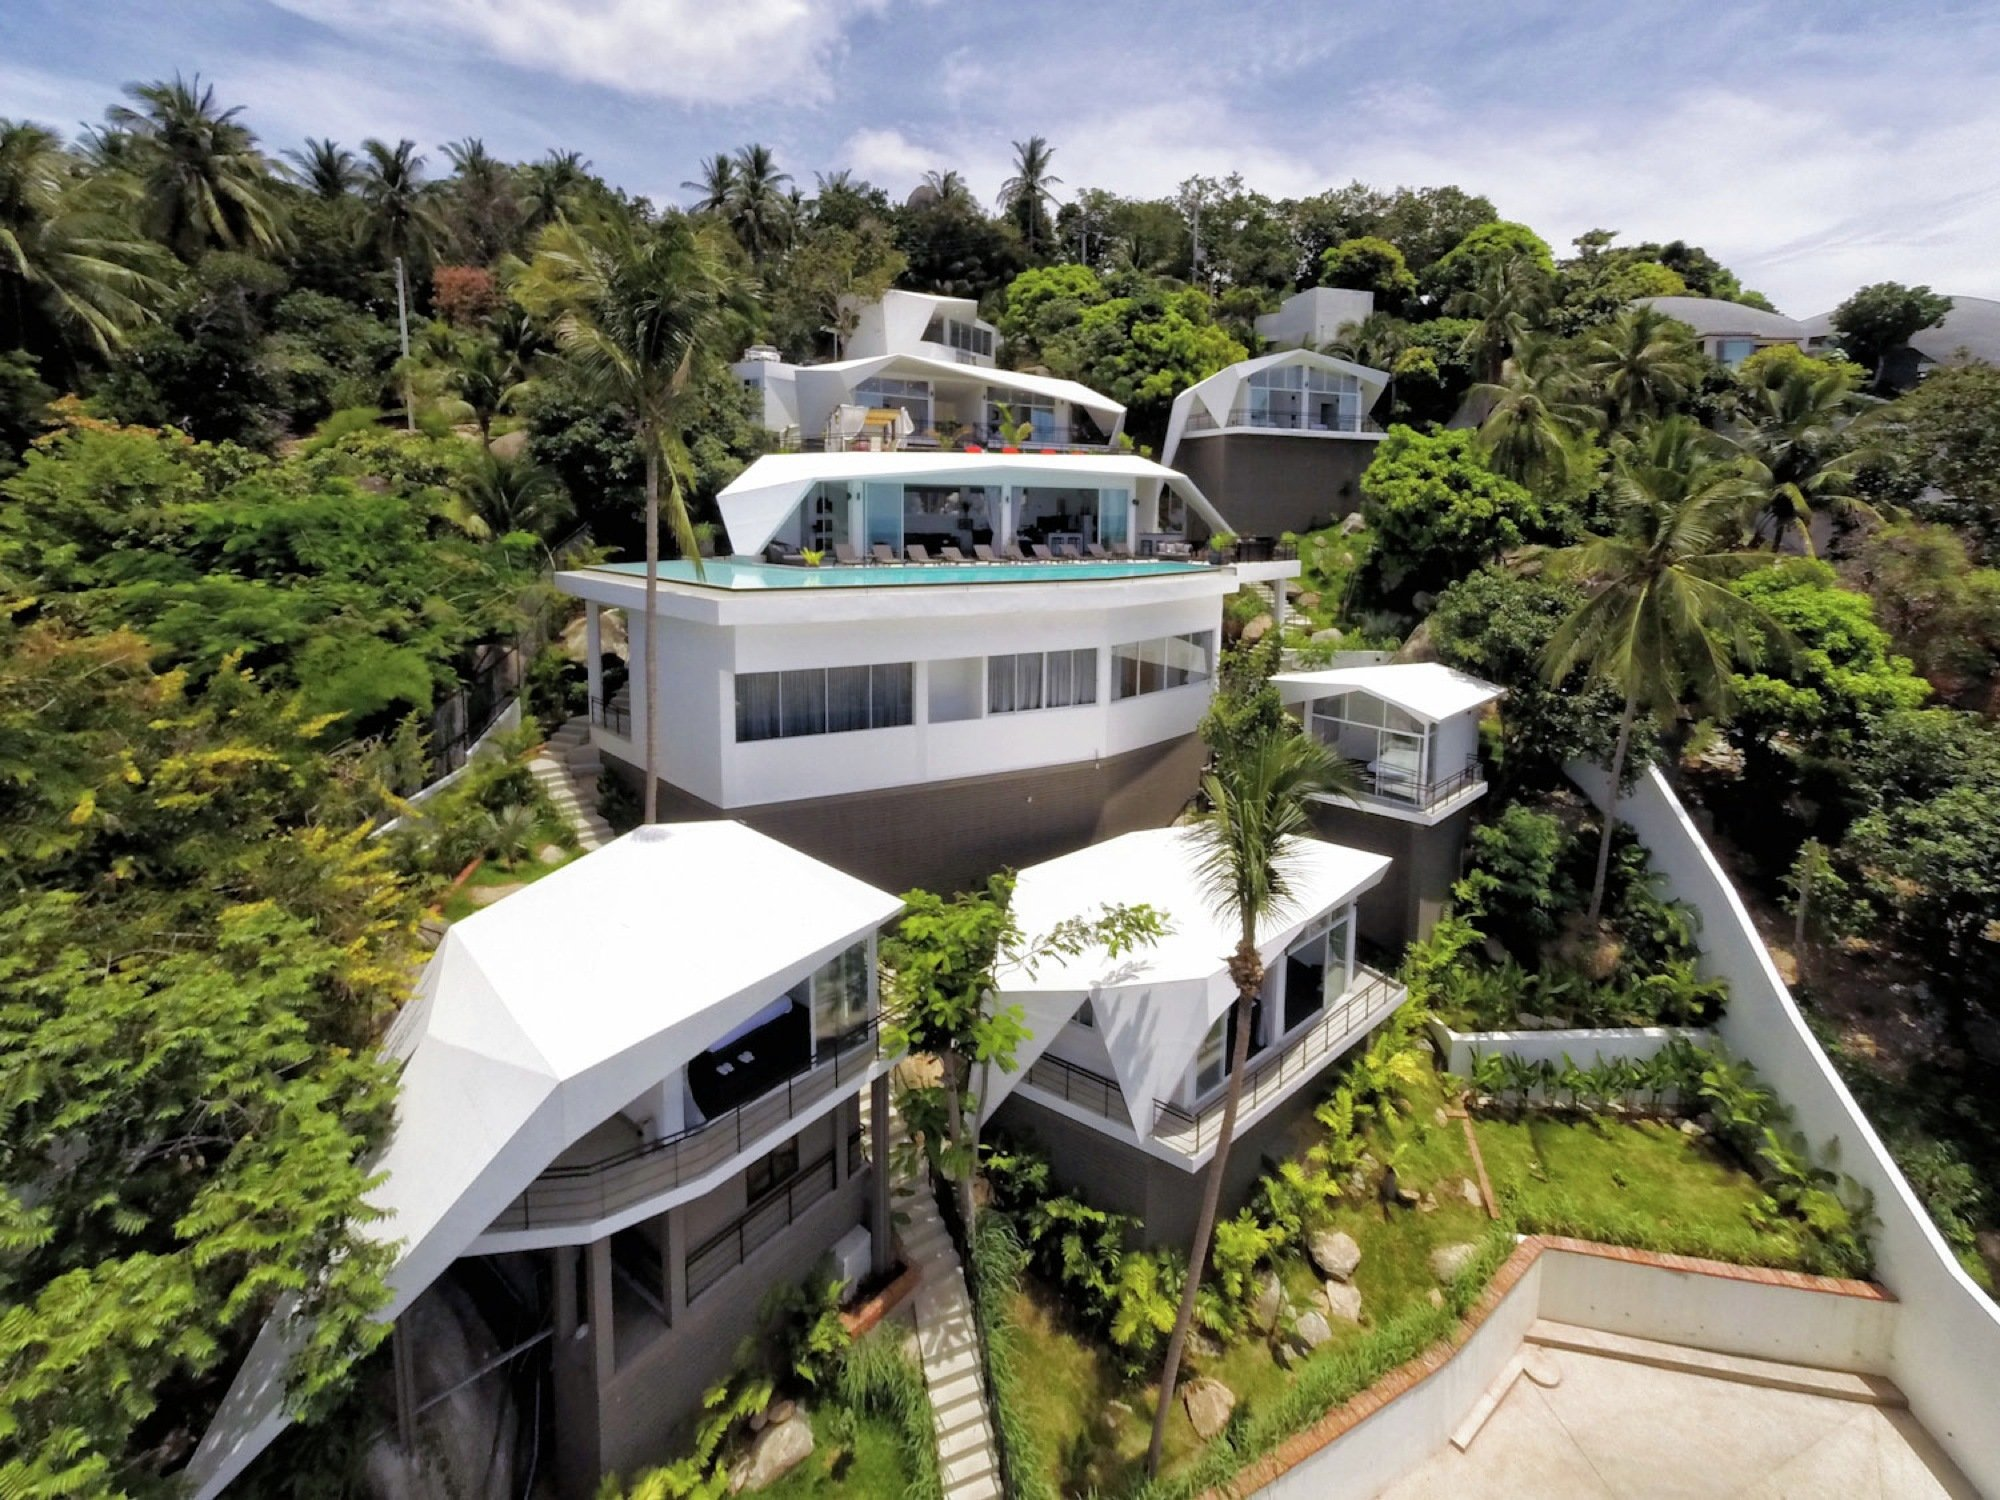 Suan Kachamudee boutique resort designed by Sicart & Smith Architects-02